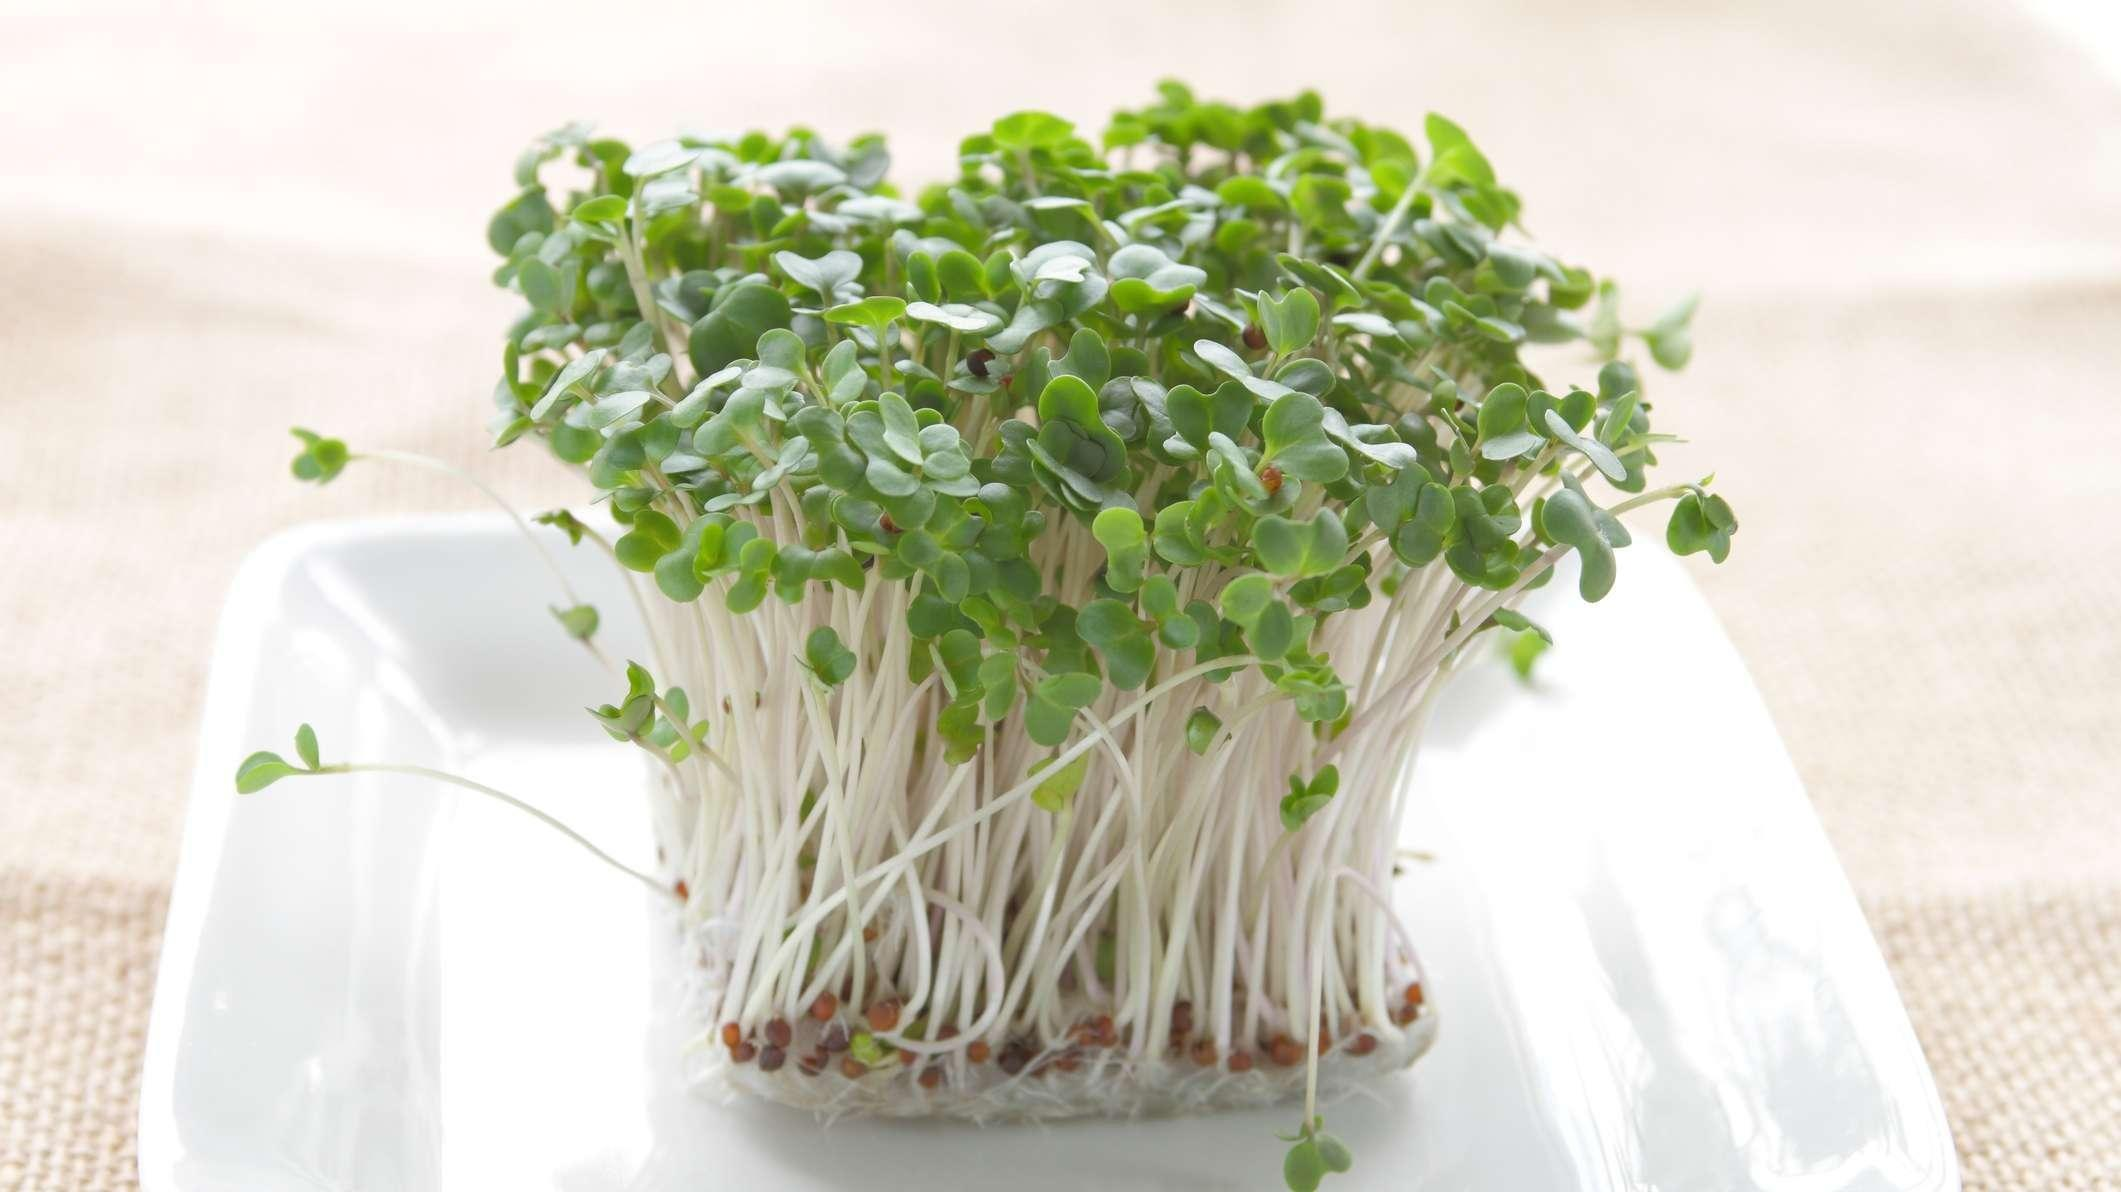 Could Broccoli Sprouts Help Treat Type 2 Diabetes?